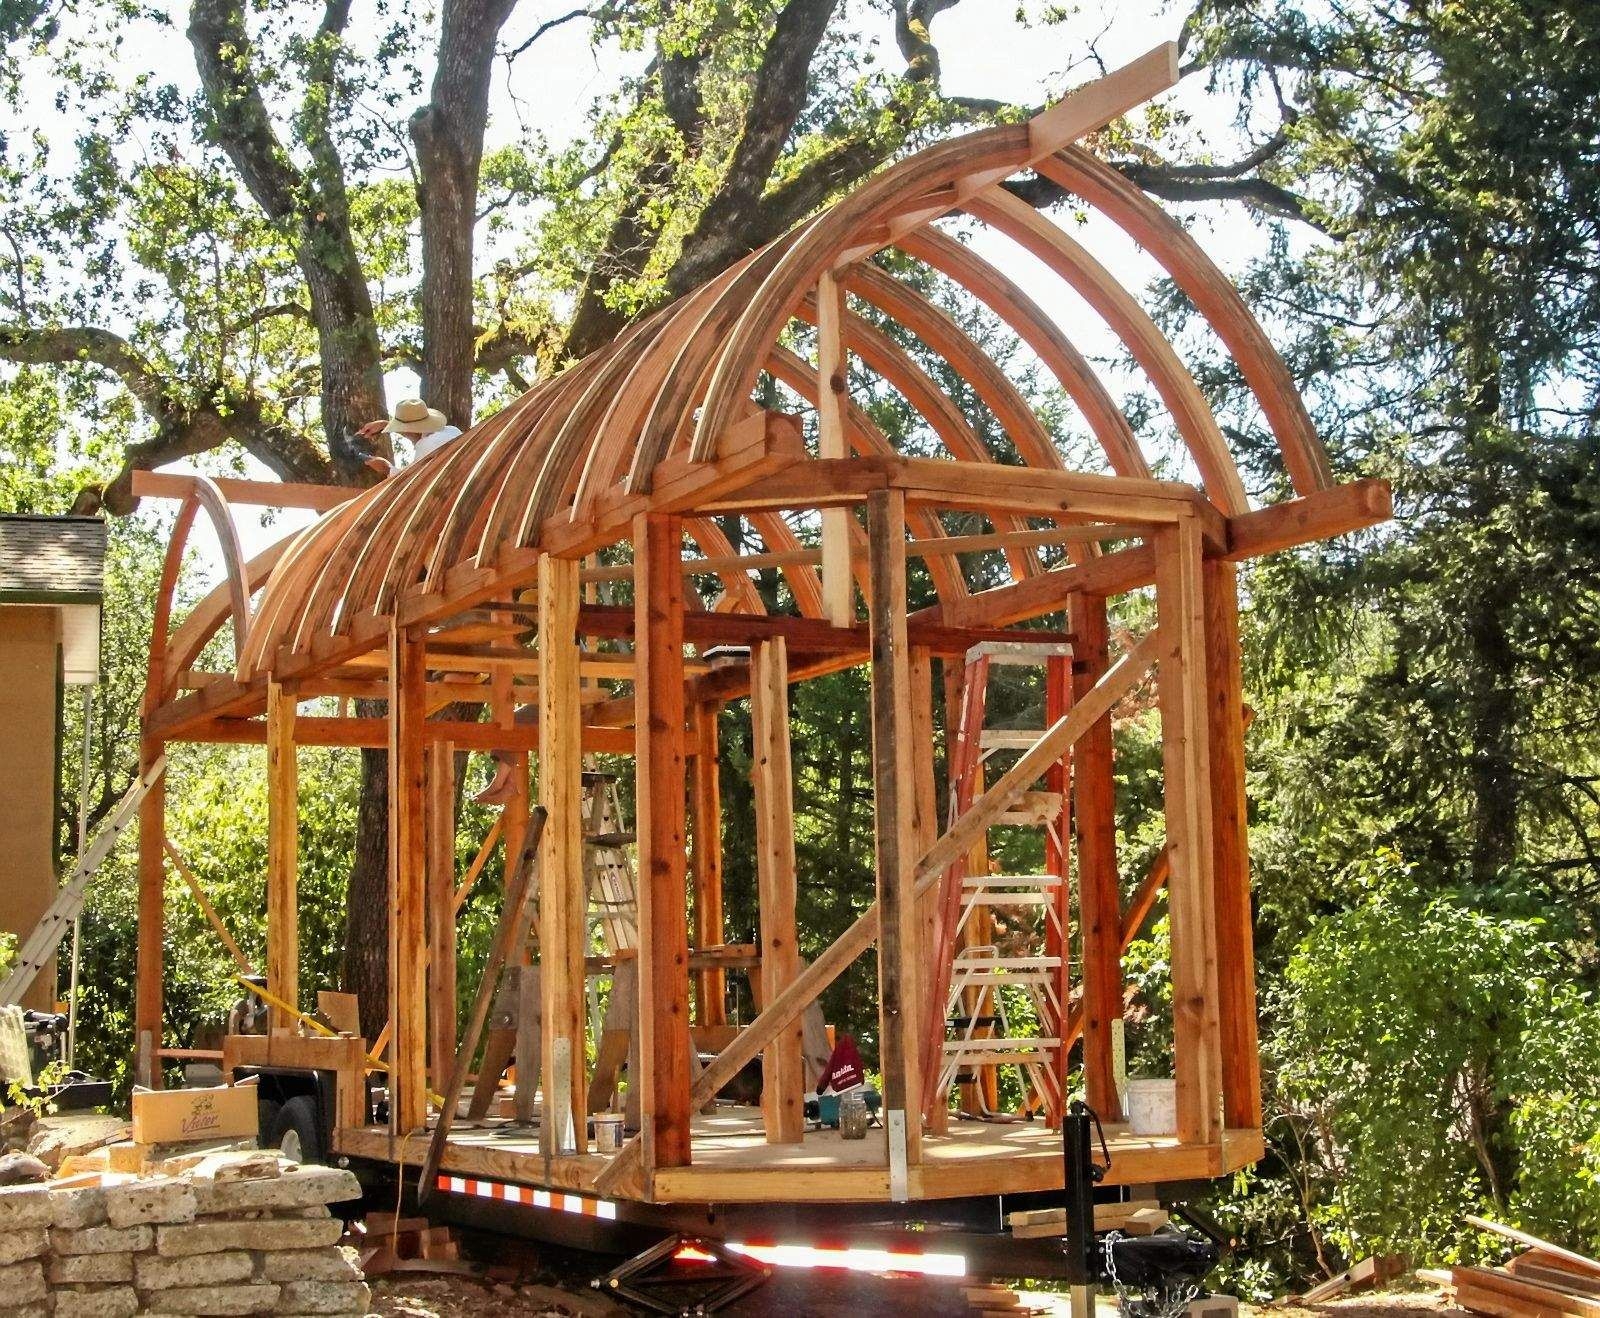 Curved roof tiny house under construction incredible for Small home construction plans